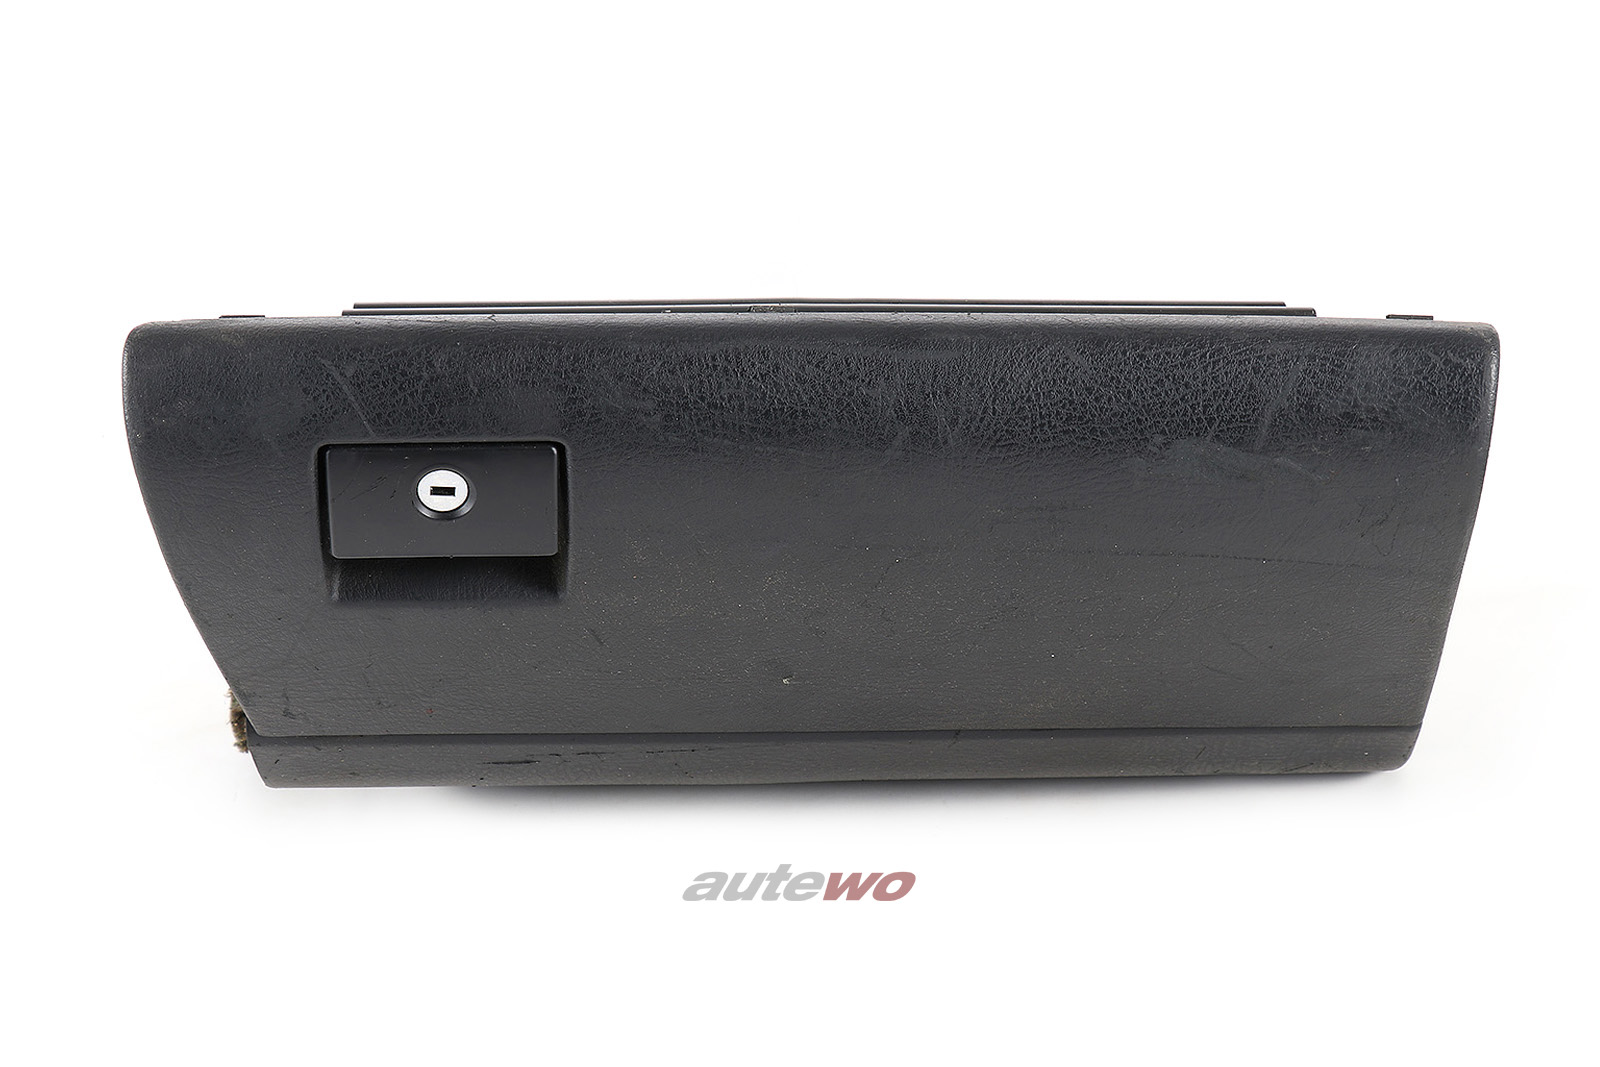 8A1857035H Audi 80 B4/S2/RS2/Coupe/Cabrio Typ 89 Handschuhfach Doppelairbag